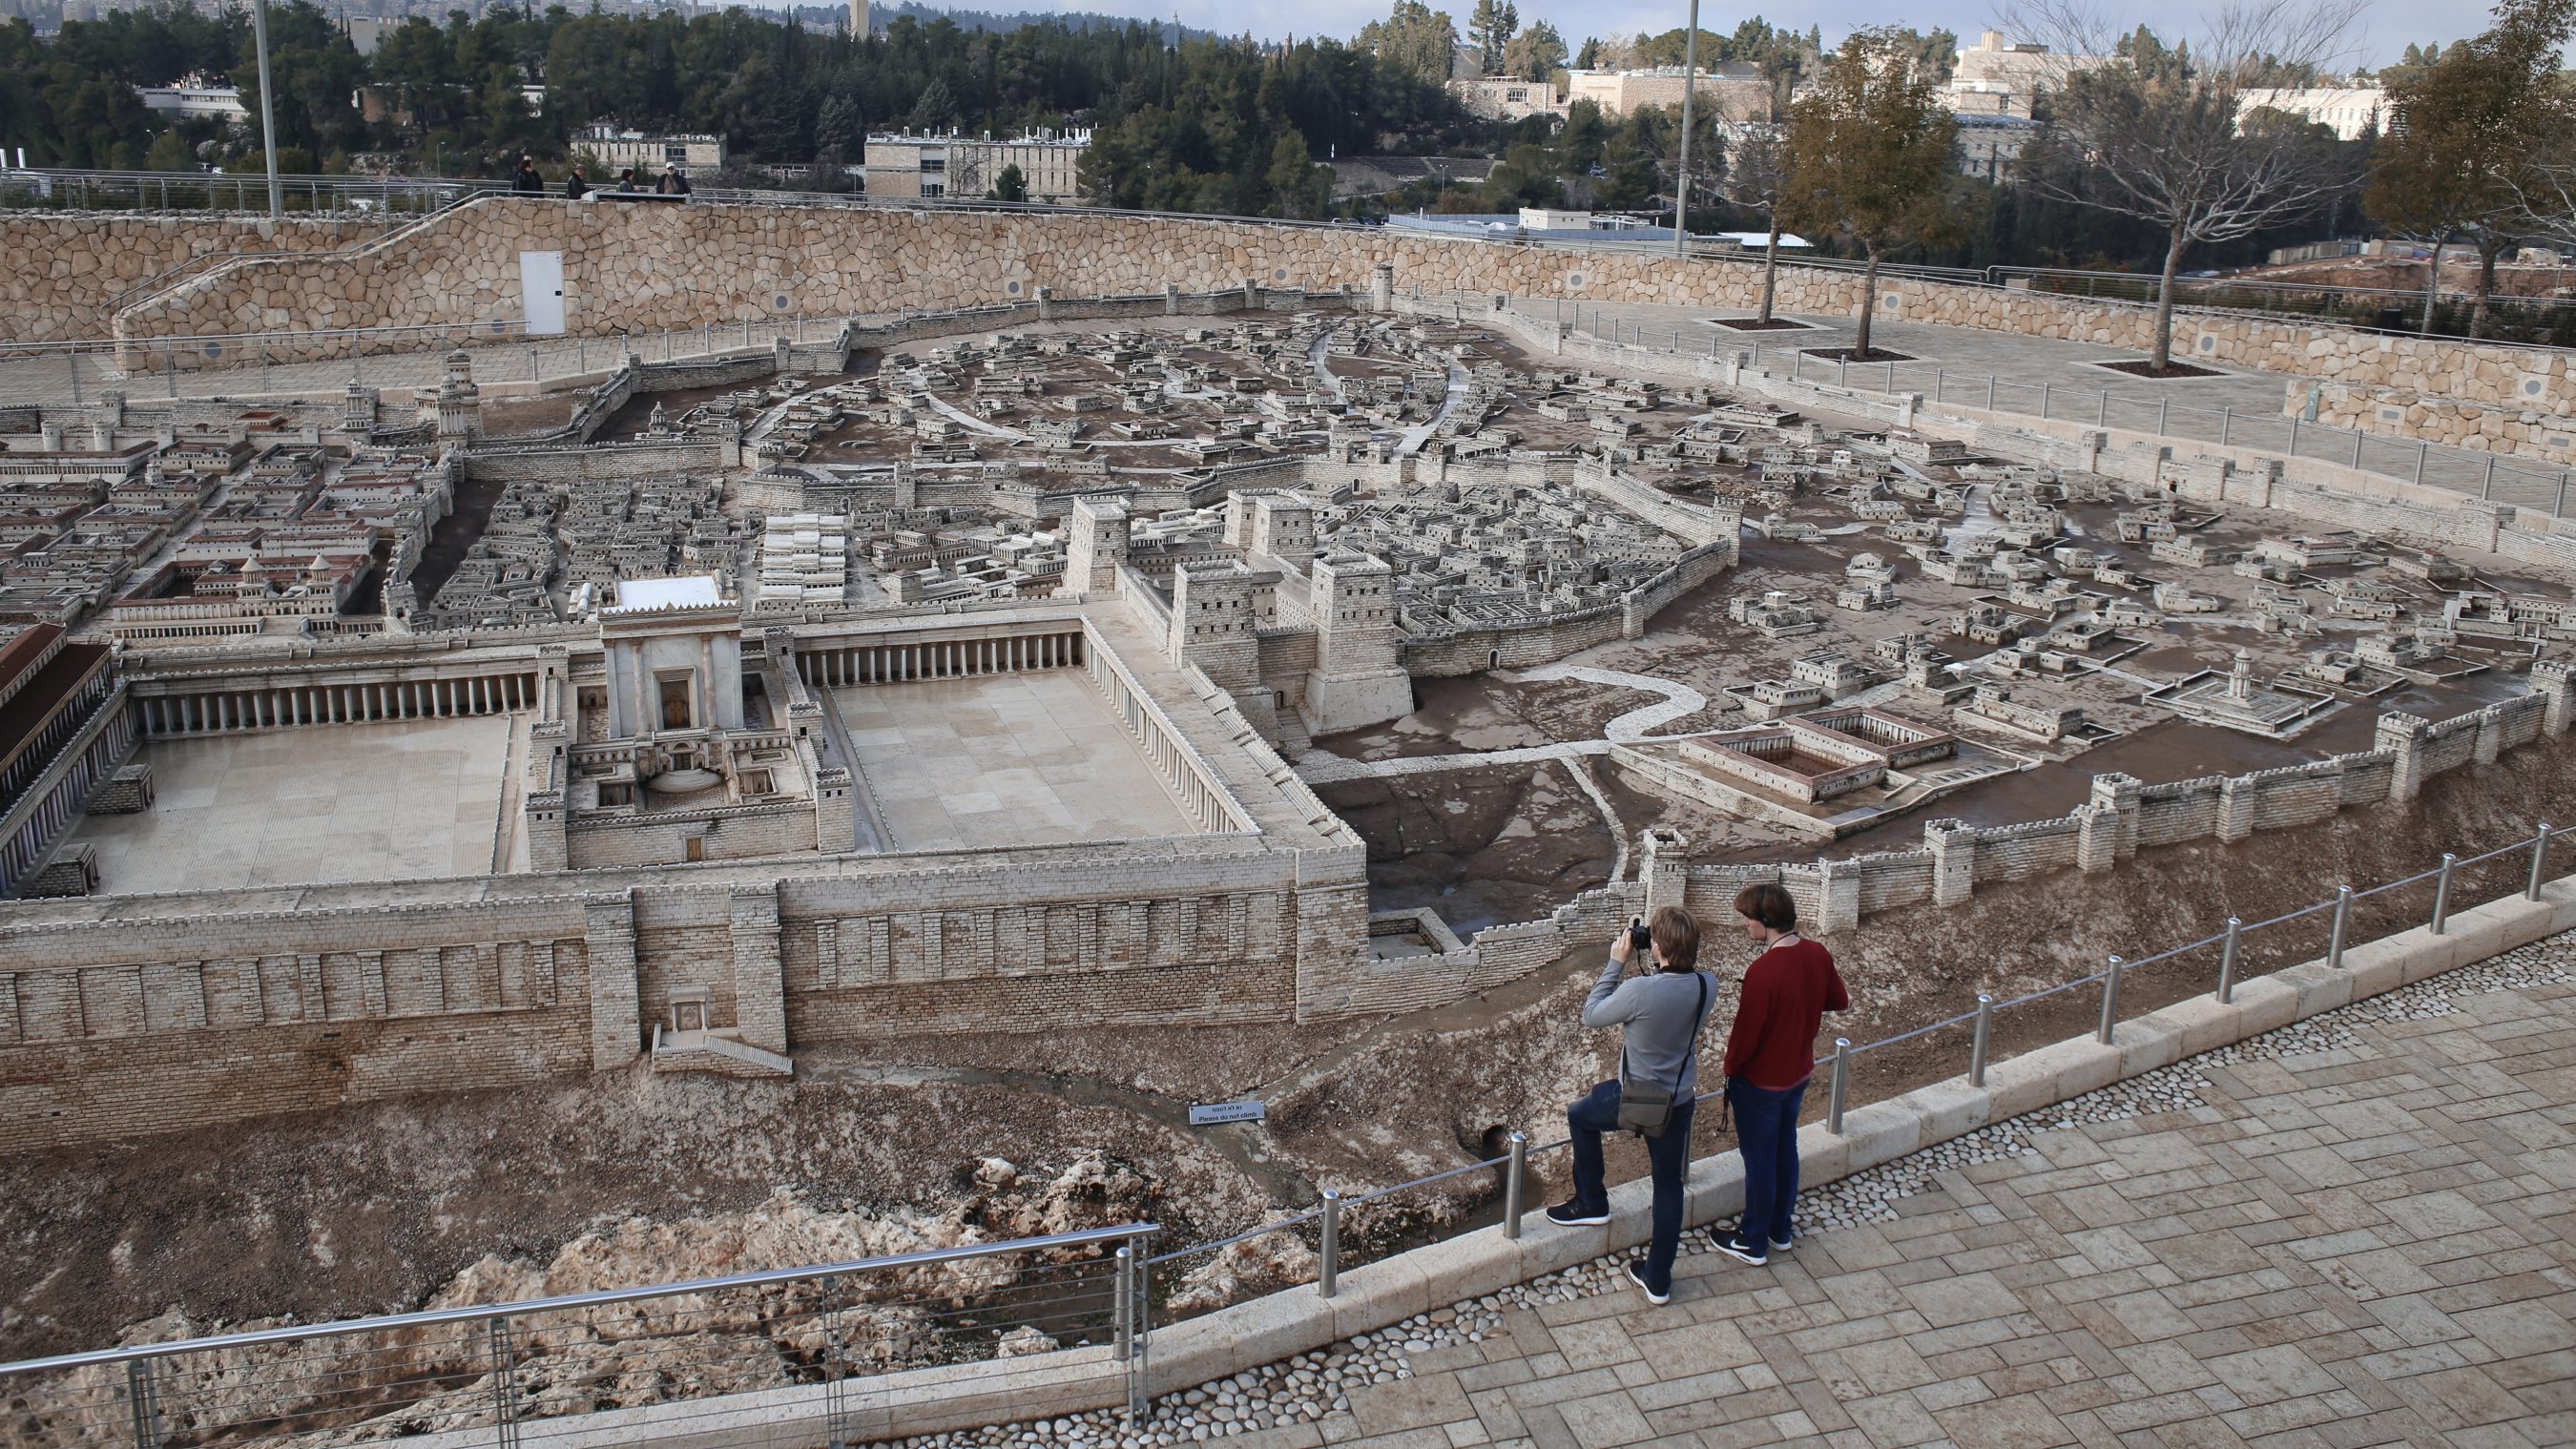 Model of Jerusalem, with the Herod's Temple in foreground, during the Second Temple period (circa first century CE), Israel Museum, Jerusalem